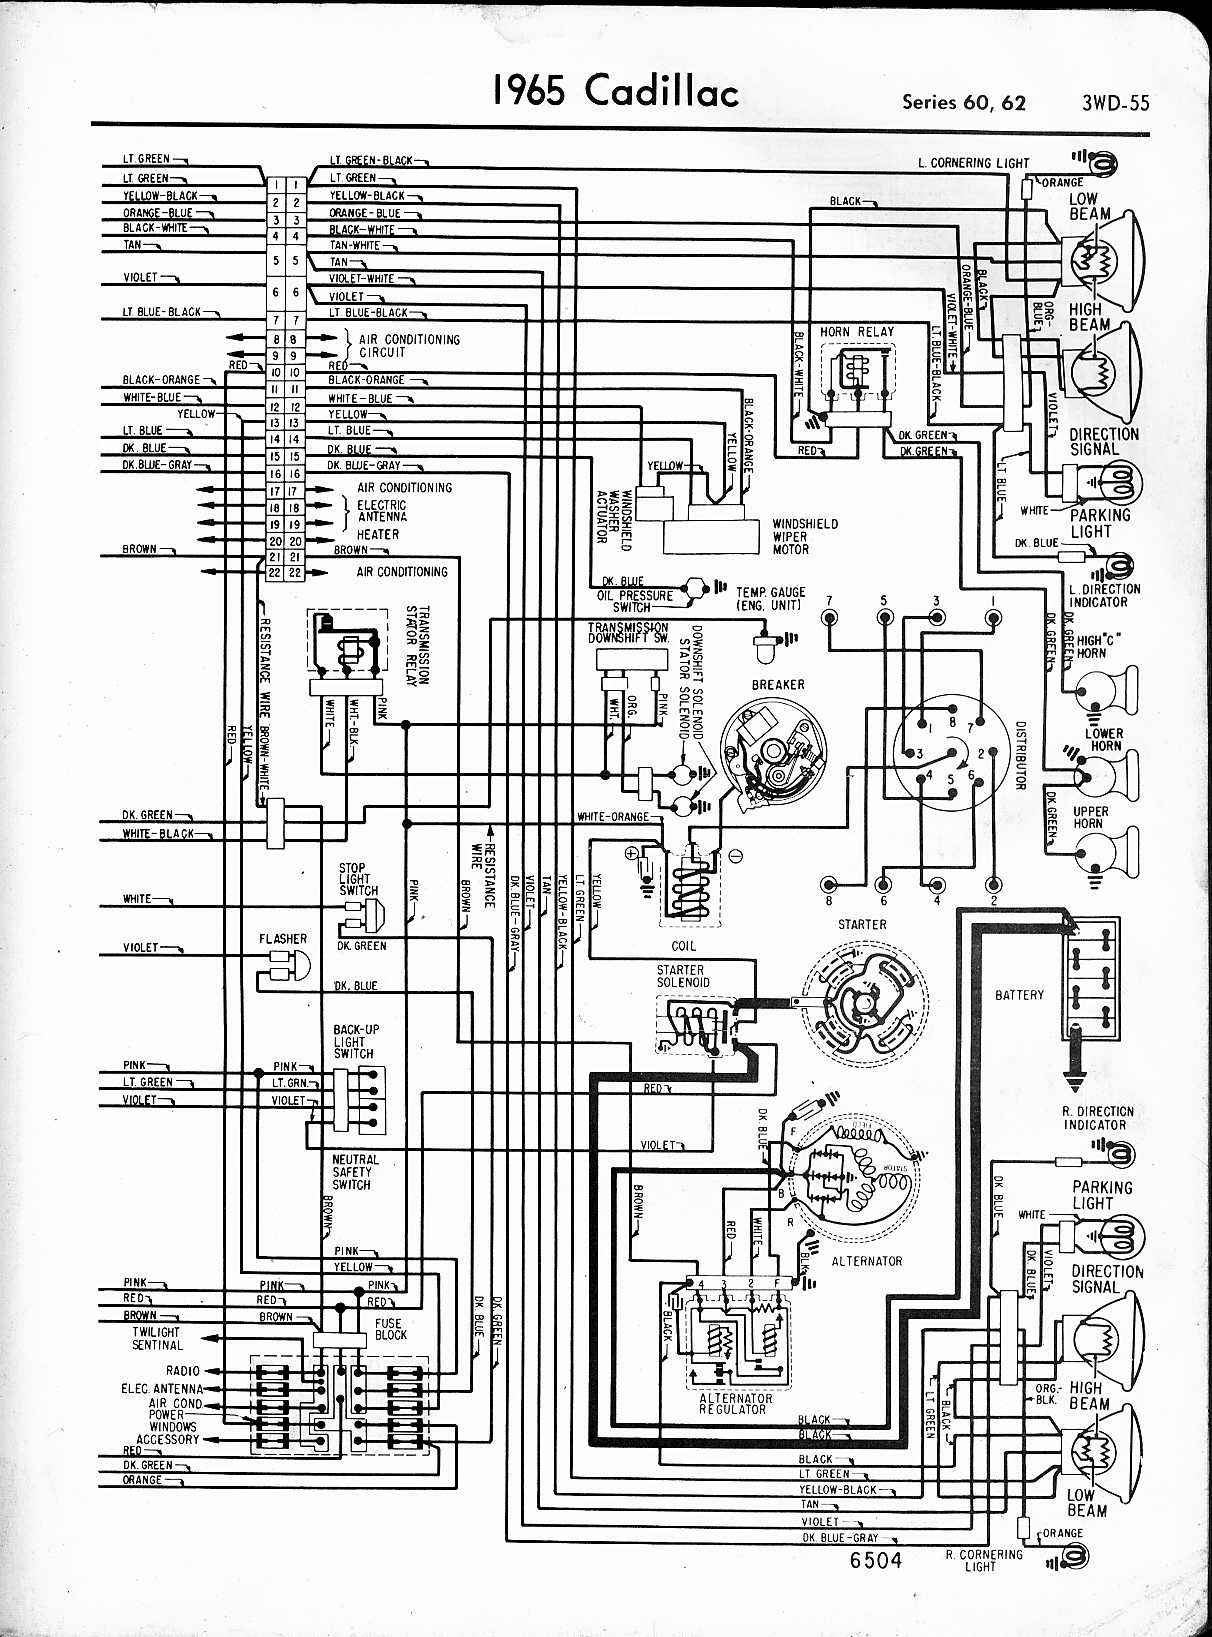 hight resolution of wiring diagram for 2000 cadillac deville wiring diagram repair 2000 cadillac deville wiring harness diagram